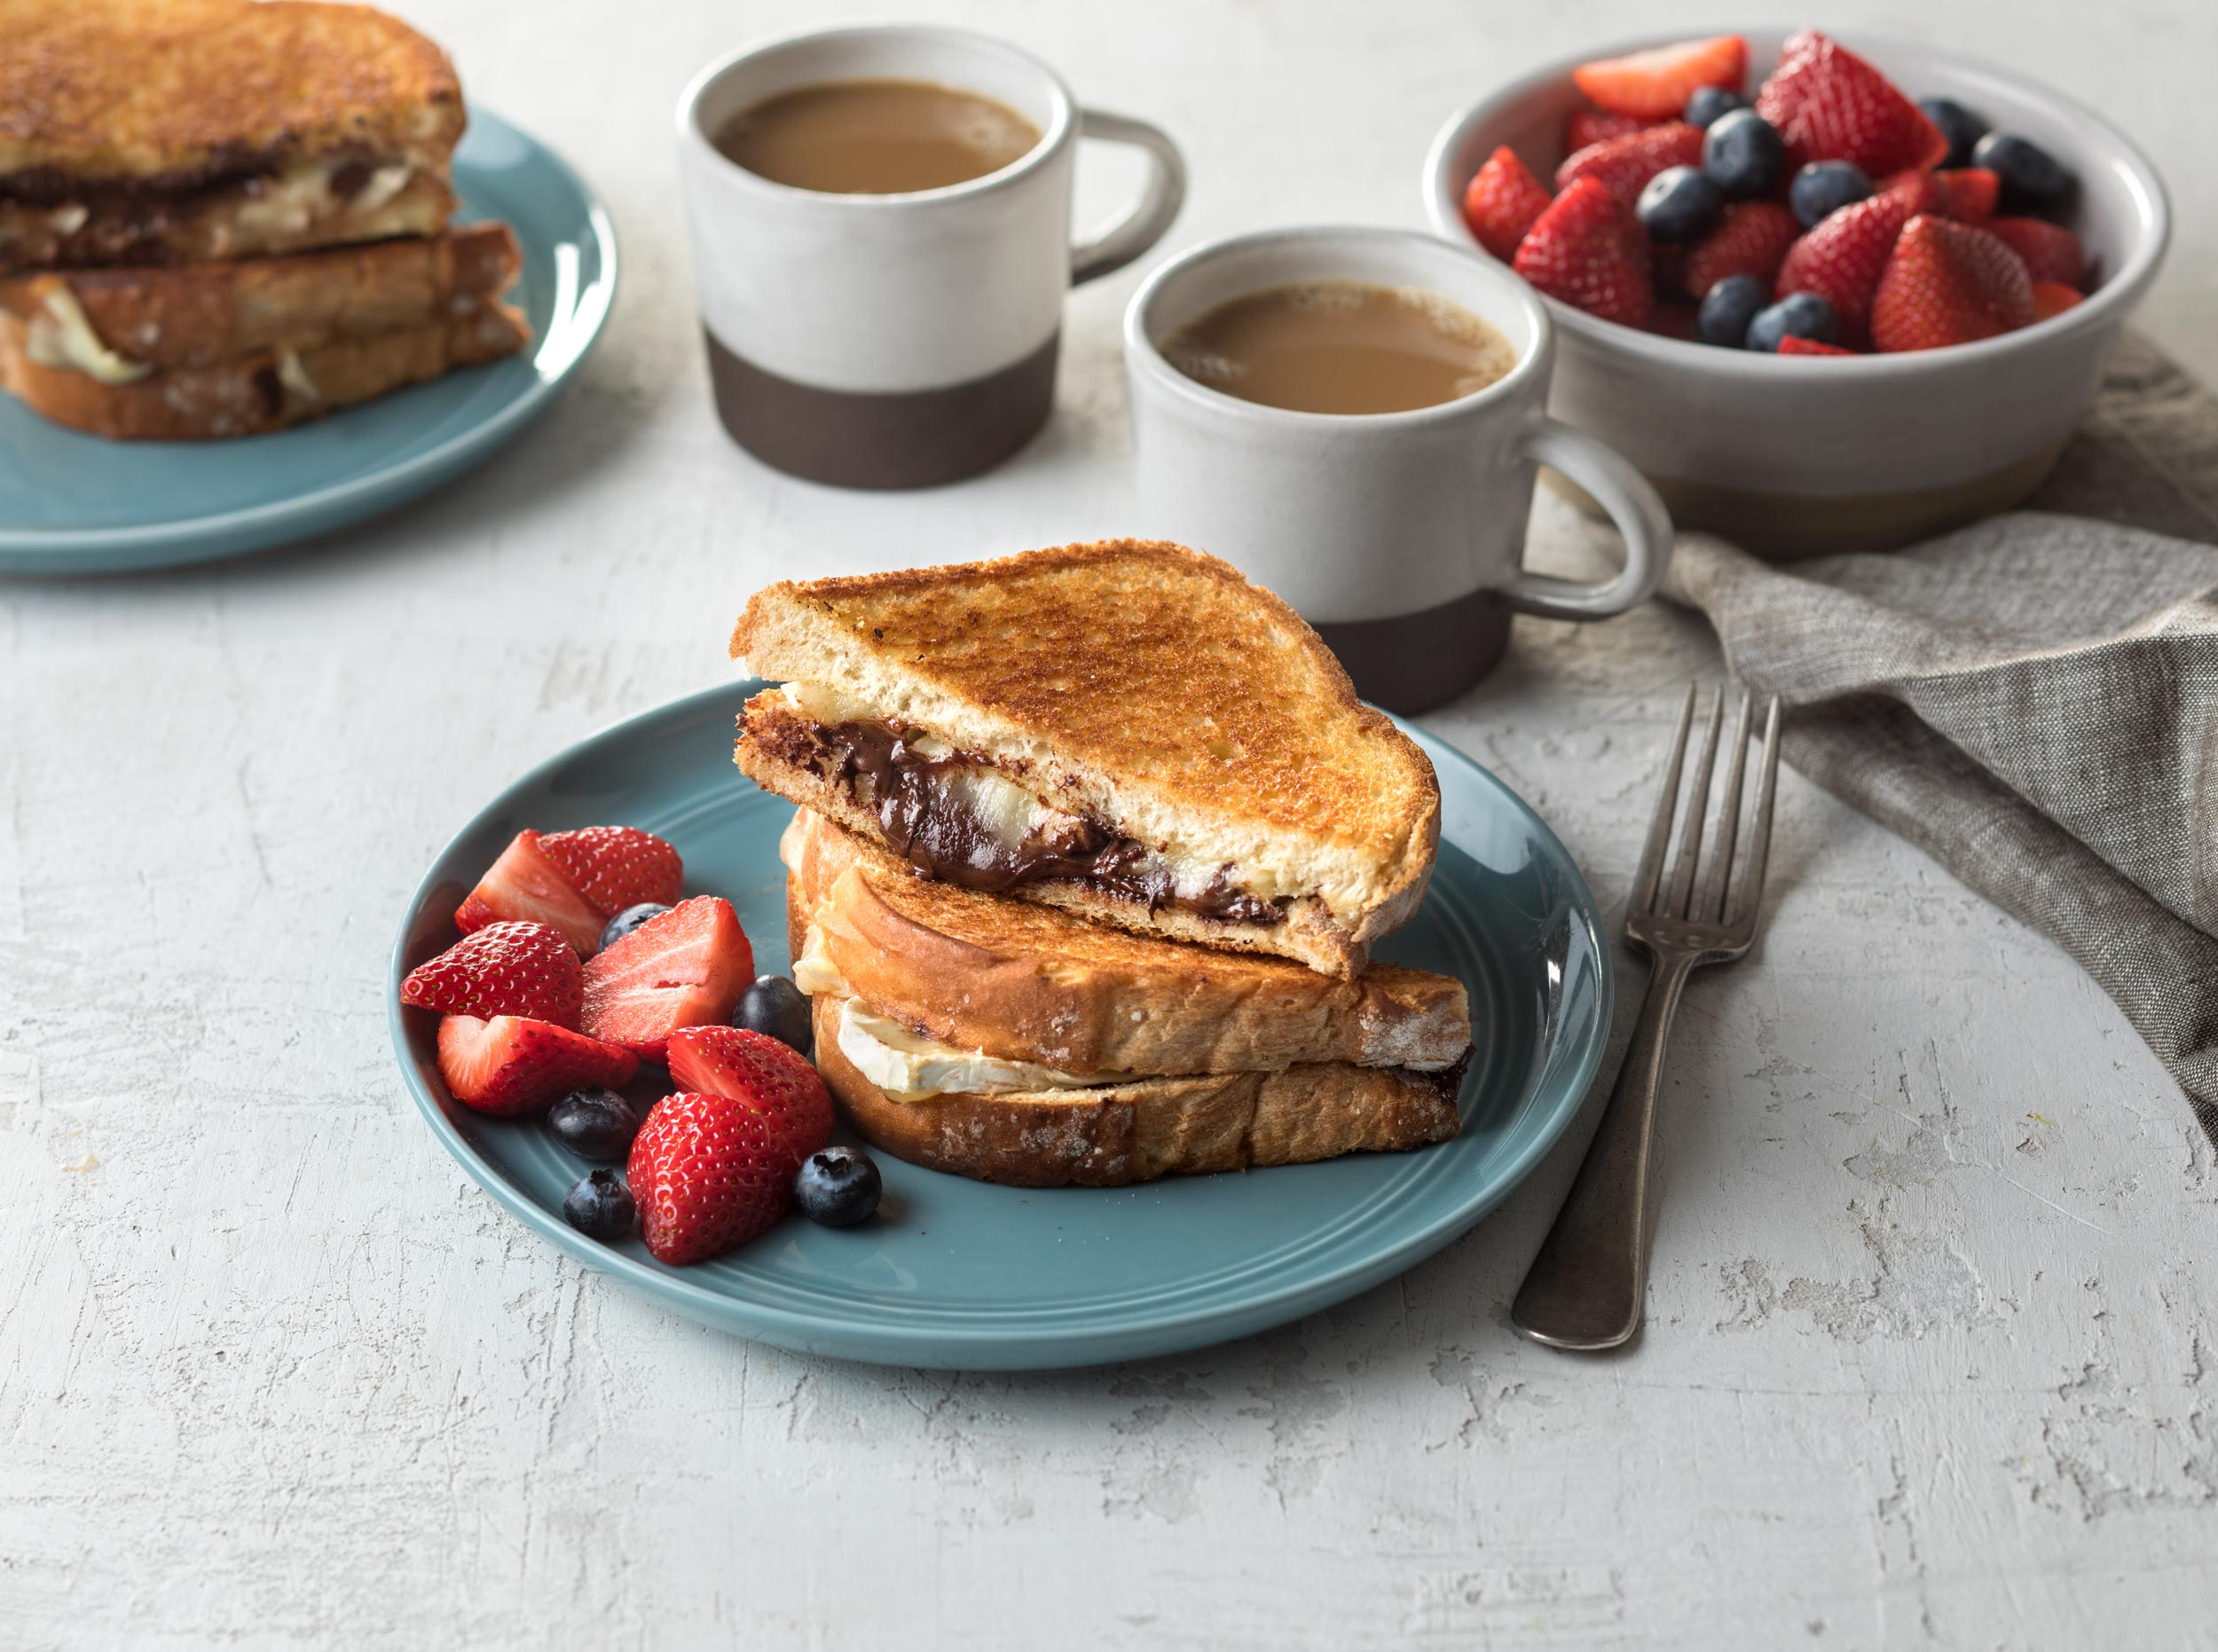 Chocolate-and-Brie-Grilled-Cheese.jpg